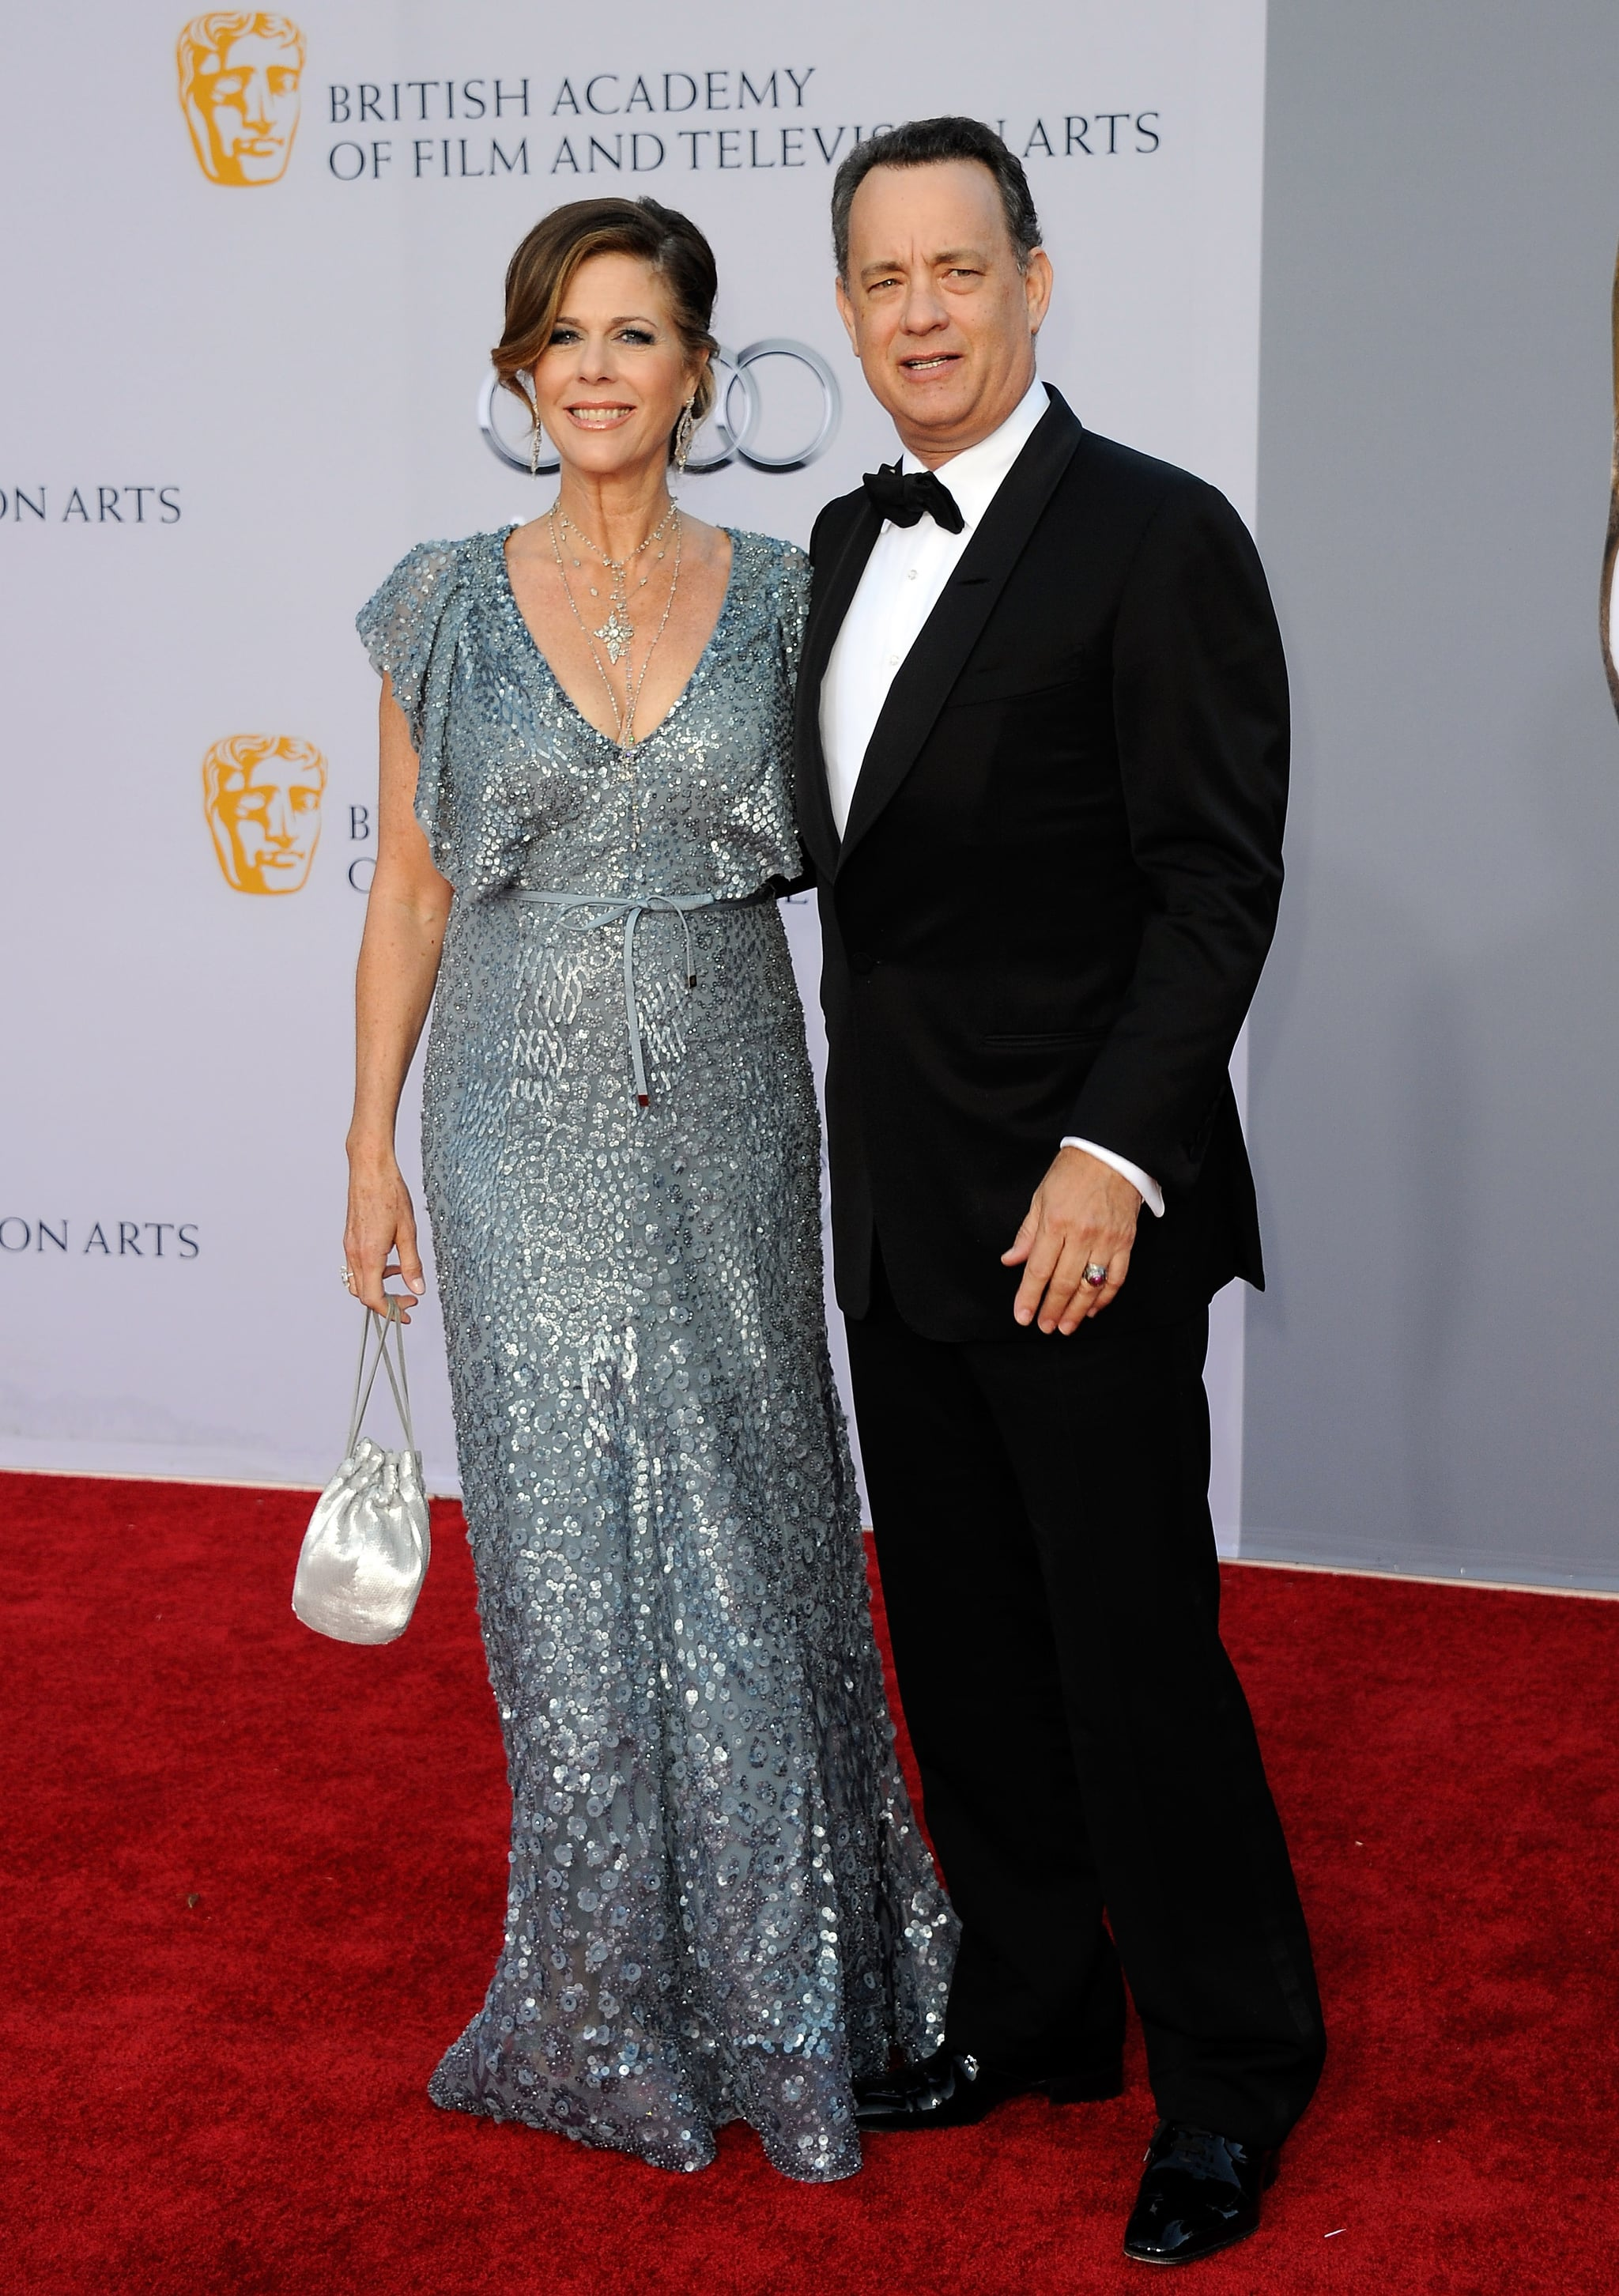 Tom Hanks and Rita Wilson at the BAFTA Brits to Watch event in LA.